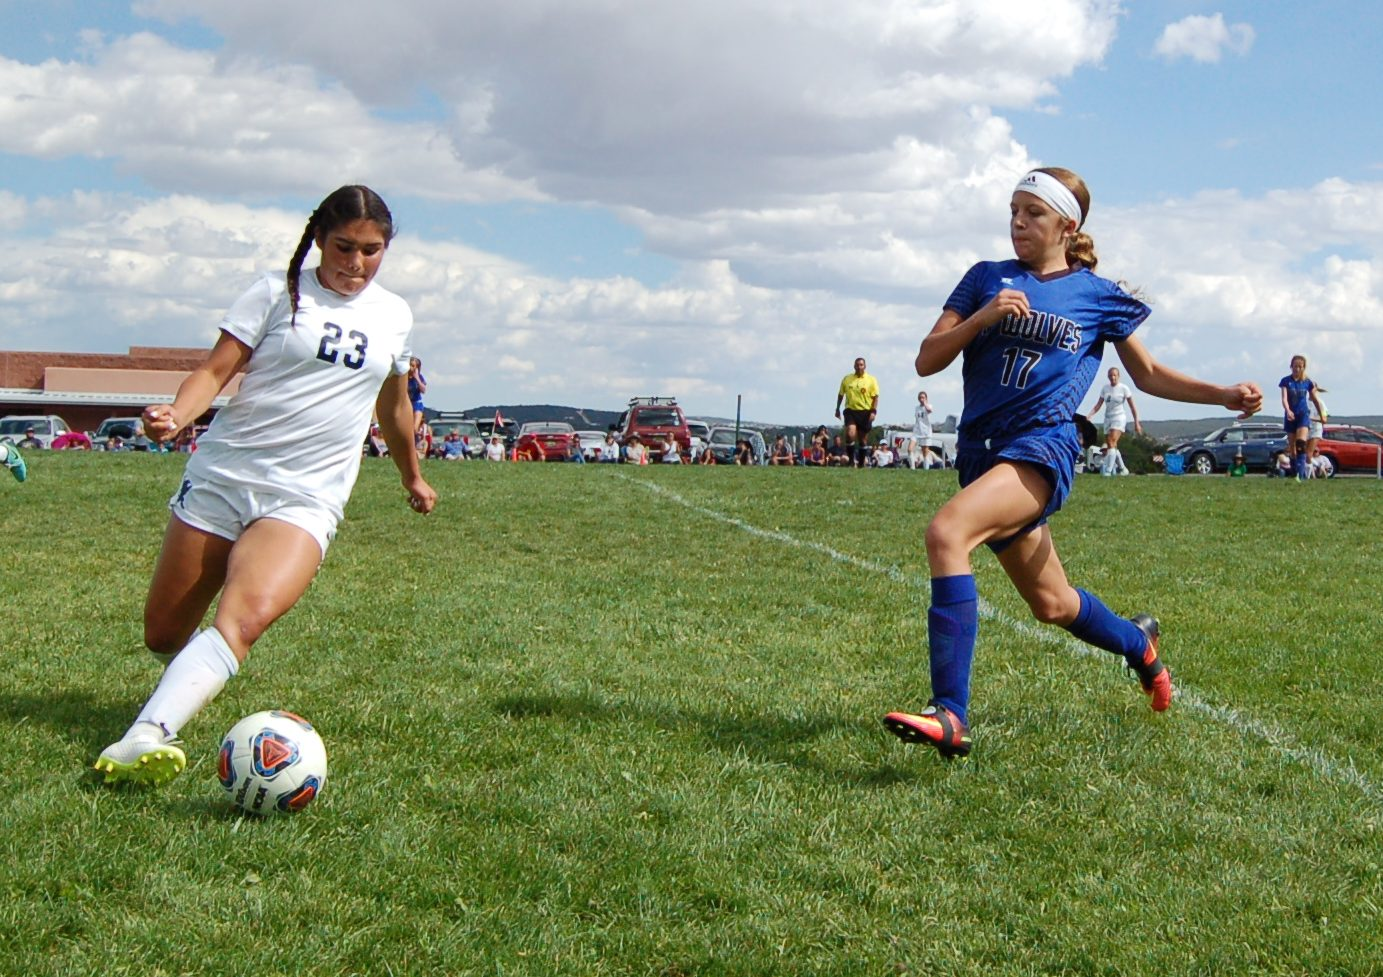 East Mtn. girls soccer coach thinks team will be OK despite recent losses